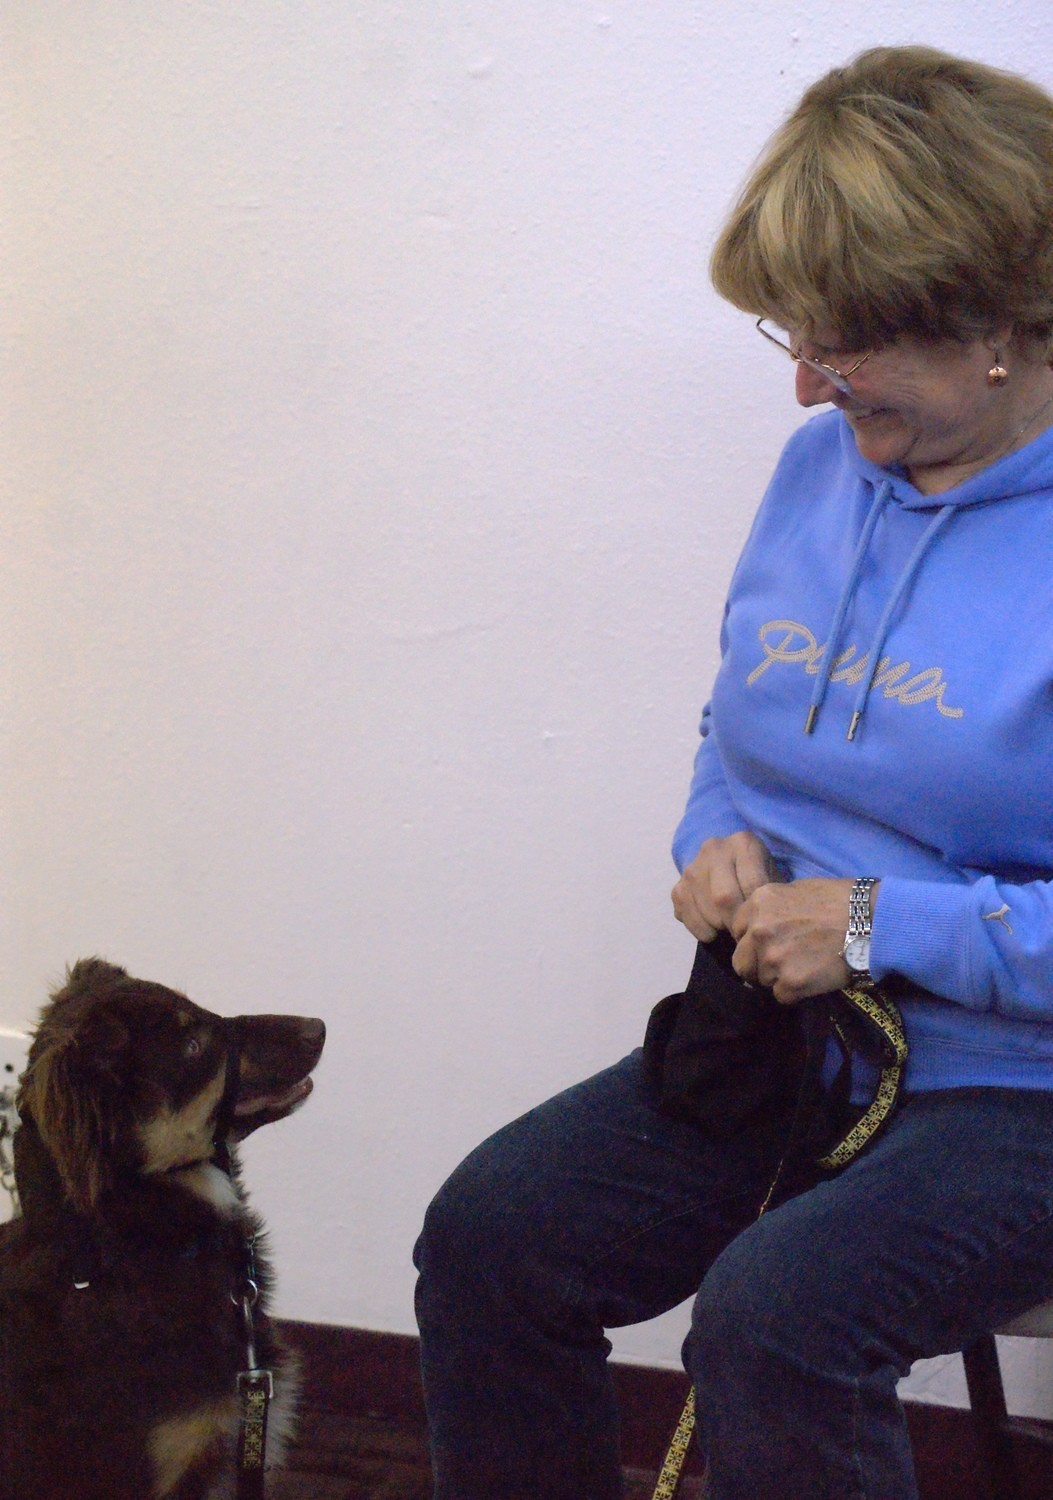 Well Trained  Puppies and Dogs, Level I: Tuesday, 03/10/20, Noon (seminar and 3, 1 hr classes) Angie, Instructor